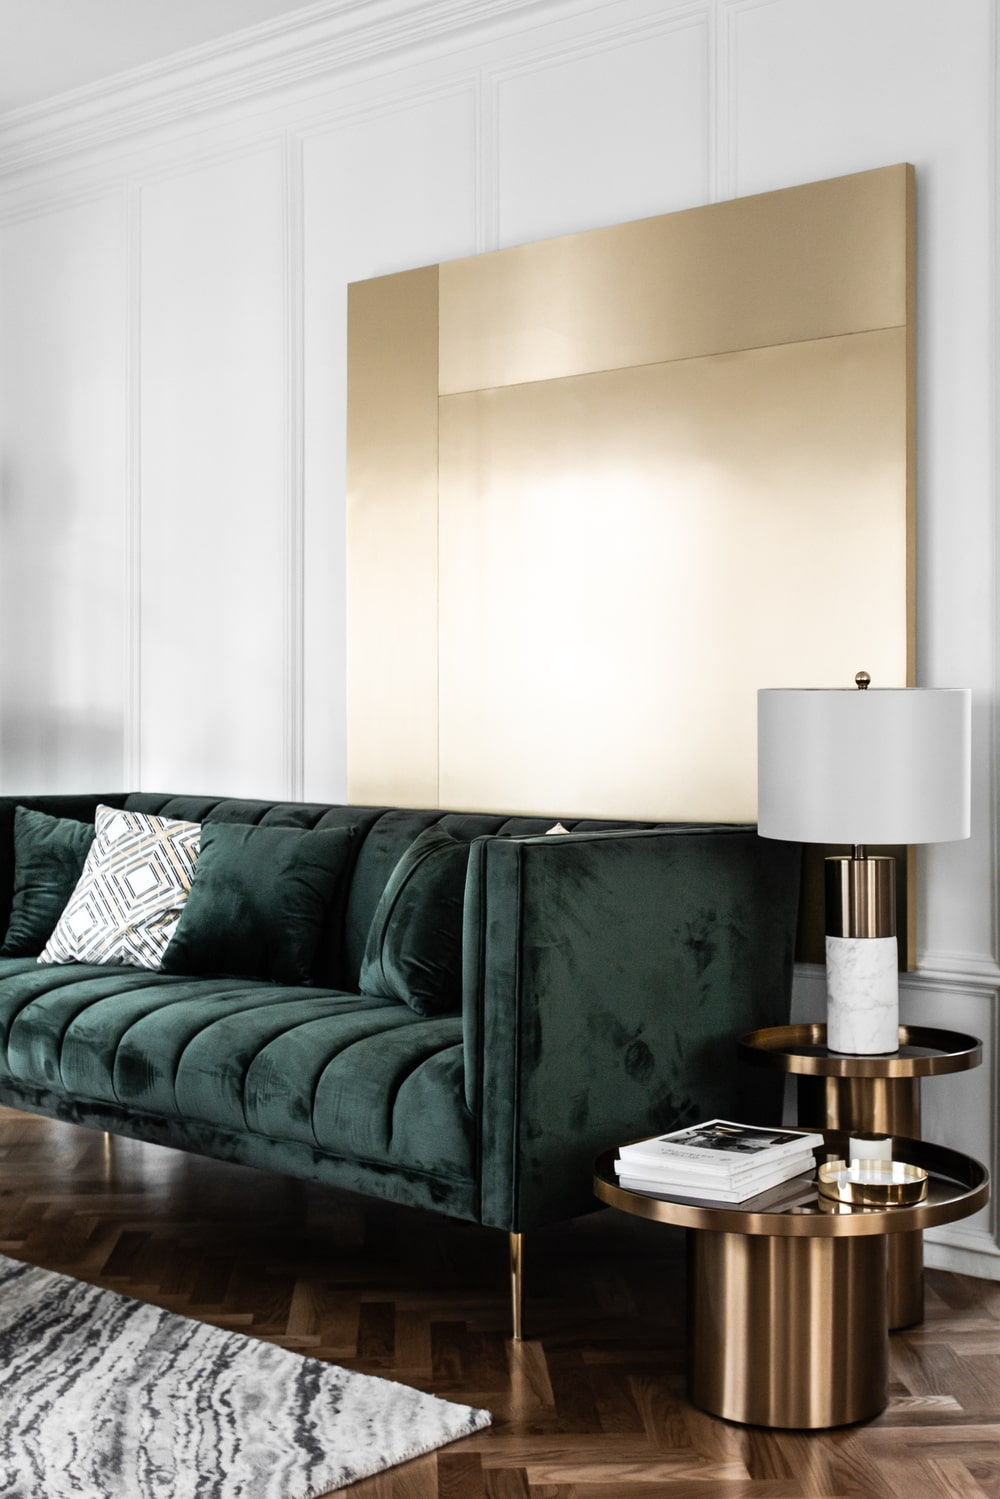 The sofa has a couple of end tables on one side with one taller to support the lamp.